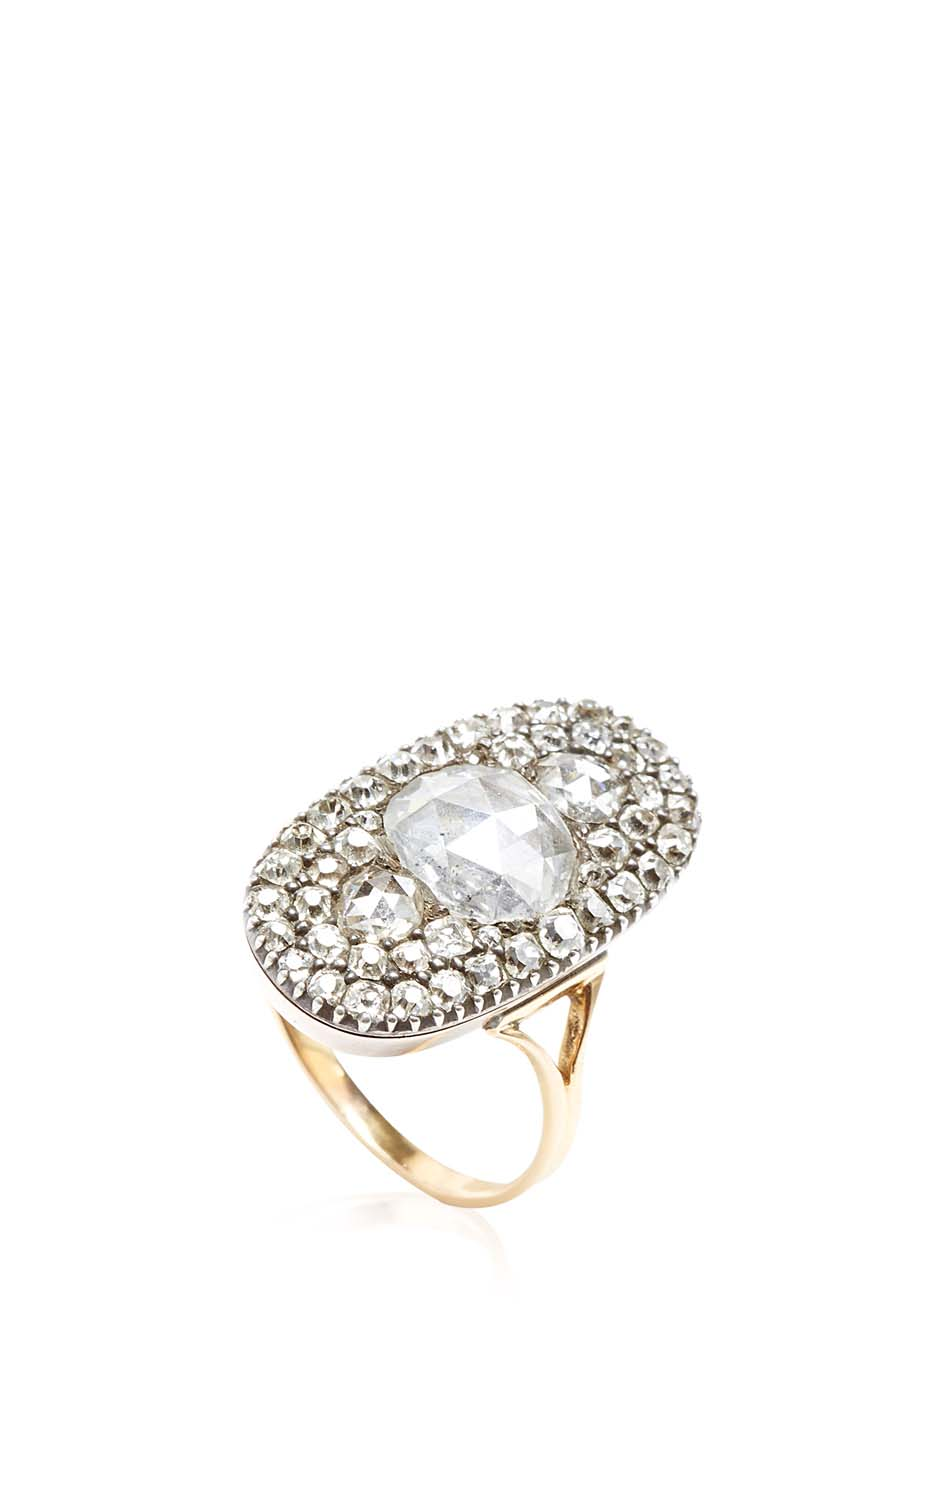 facets taxonomy diamond kt antique century rings of term ring with sold items wedding white history gold